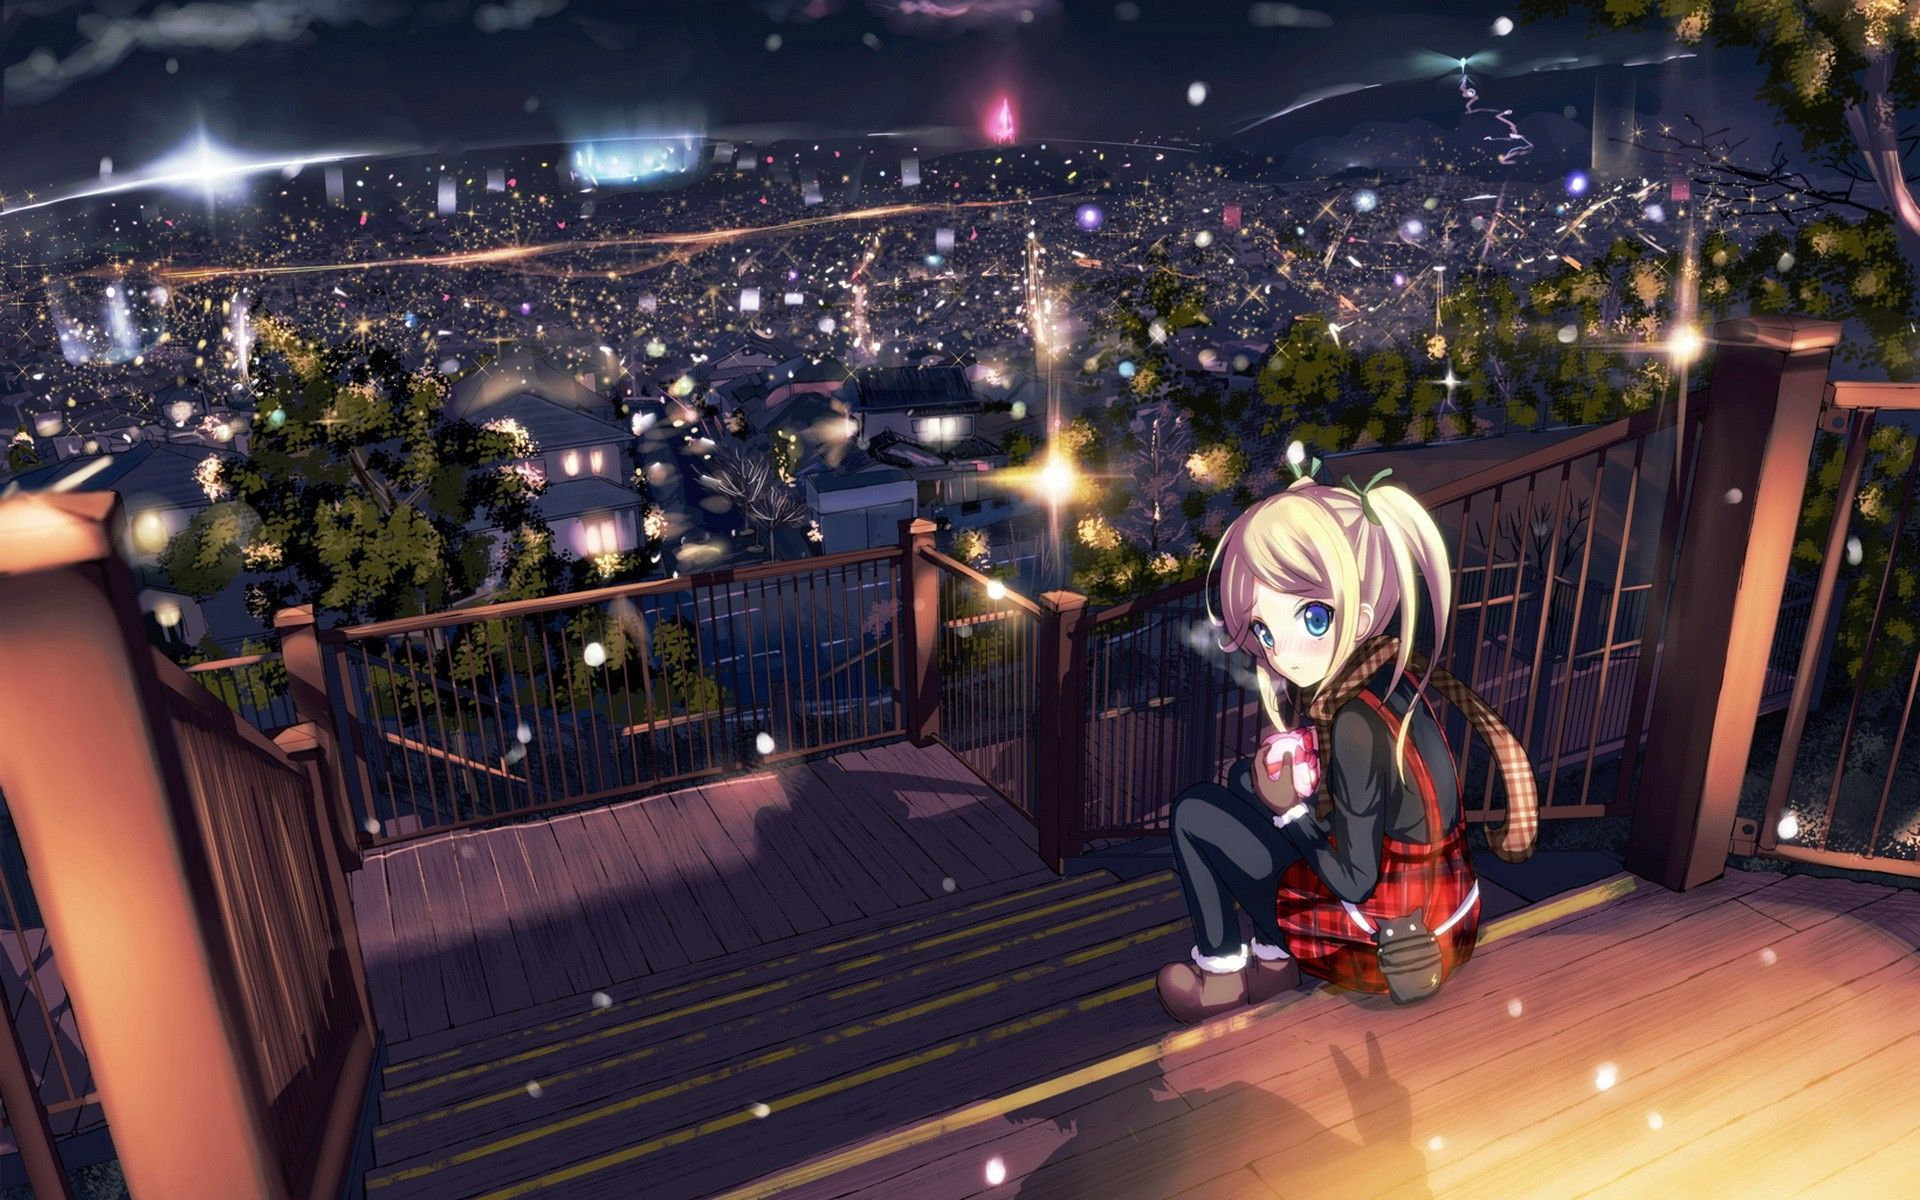 47 Best Free Alone Anime Wallpapers Wallpaperaccess